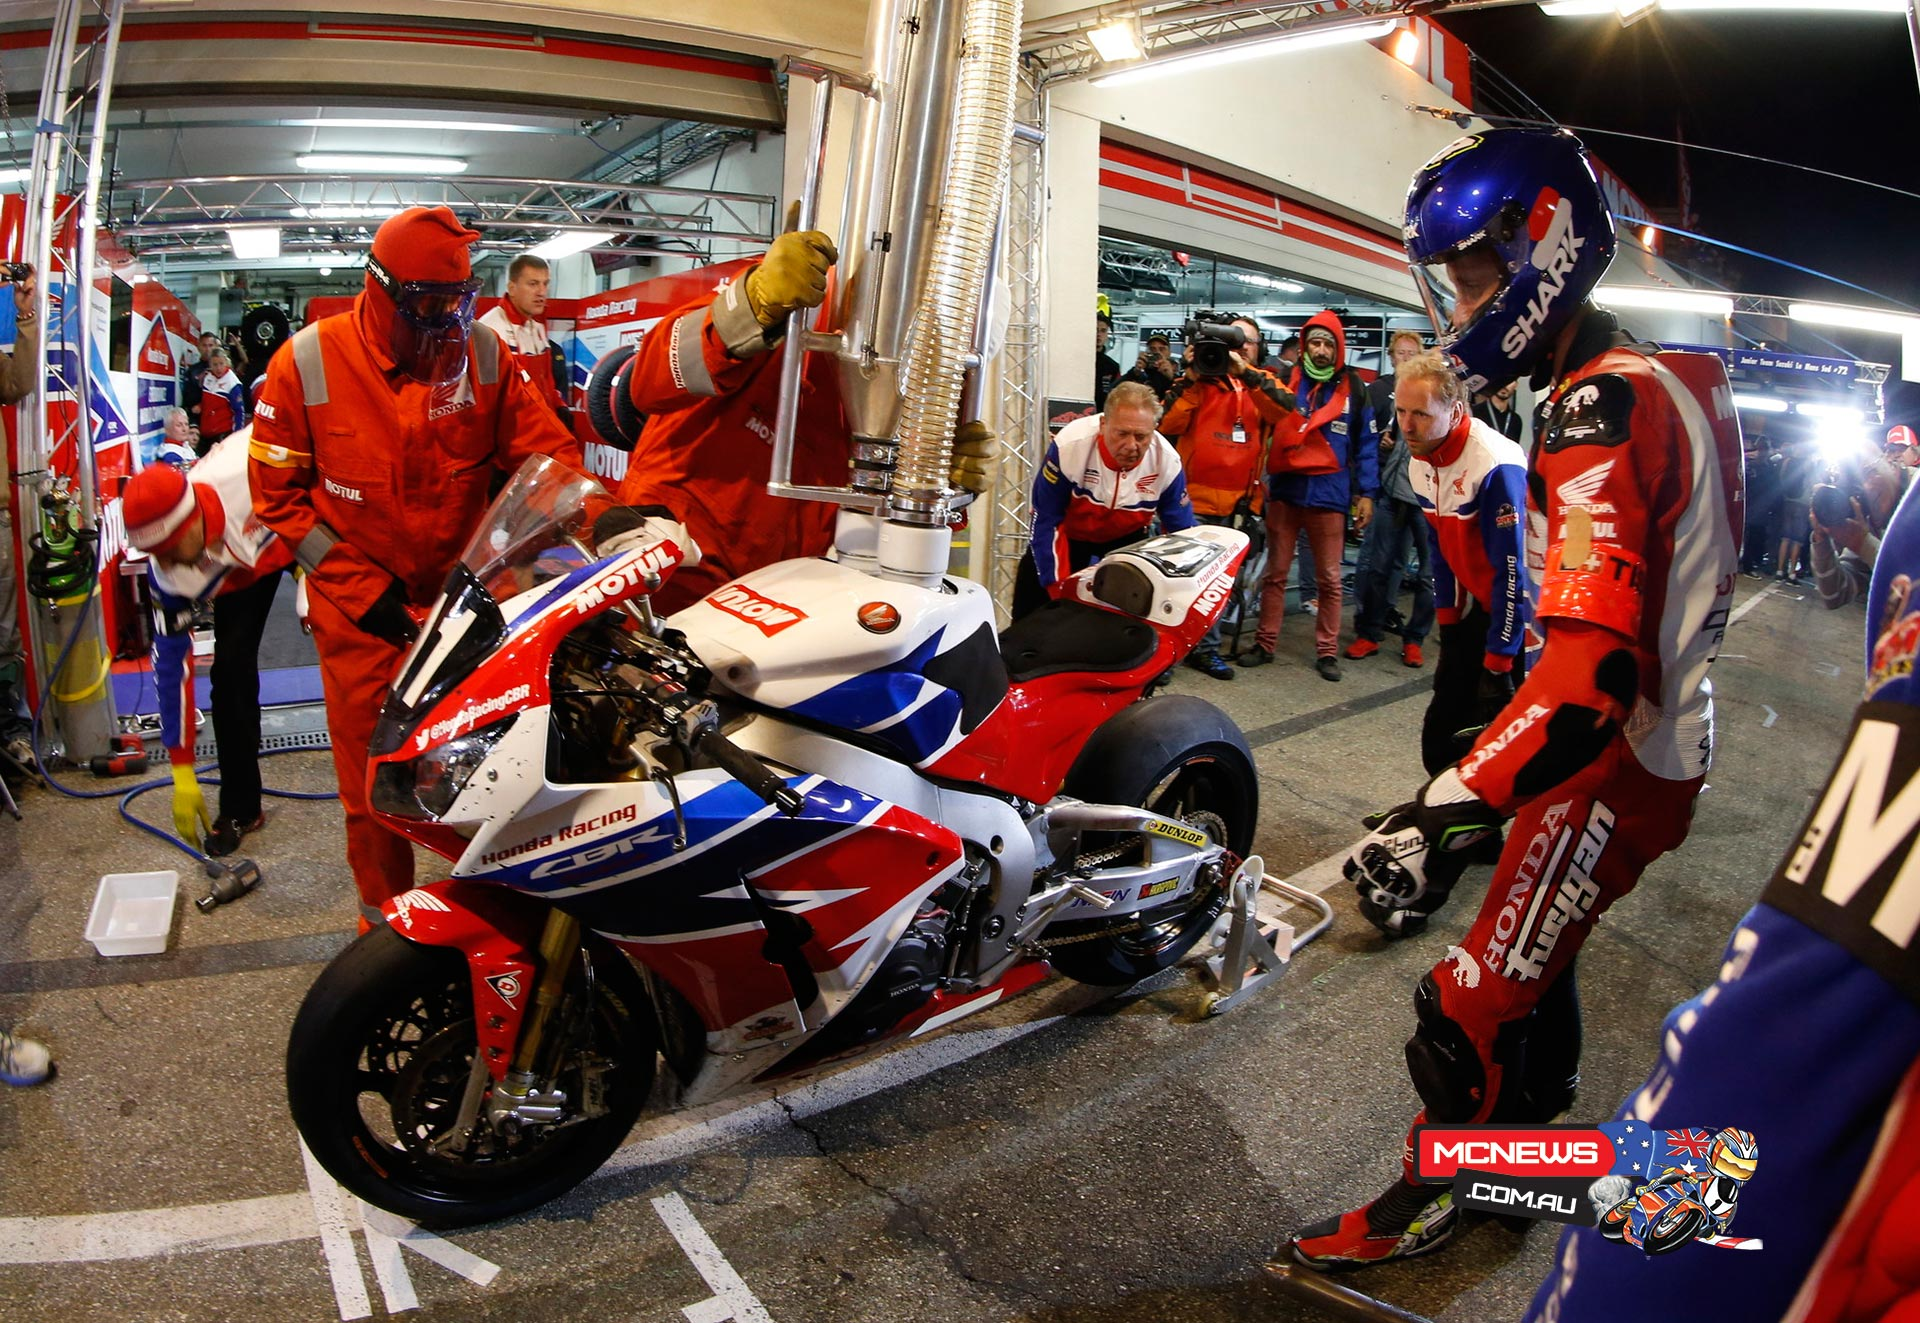 2015 Bol d'Or - Honda Endurance Racing Team